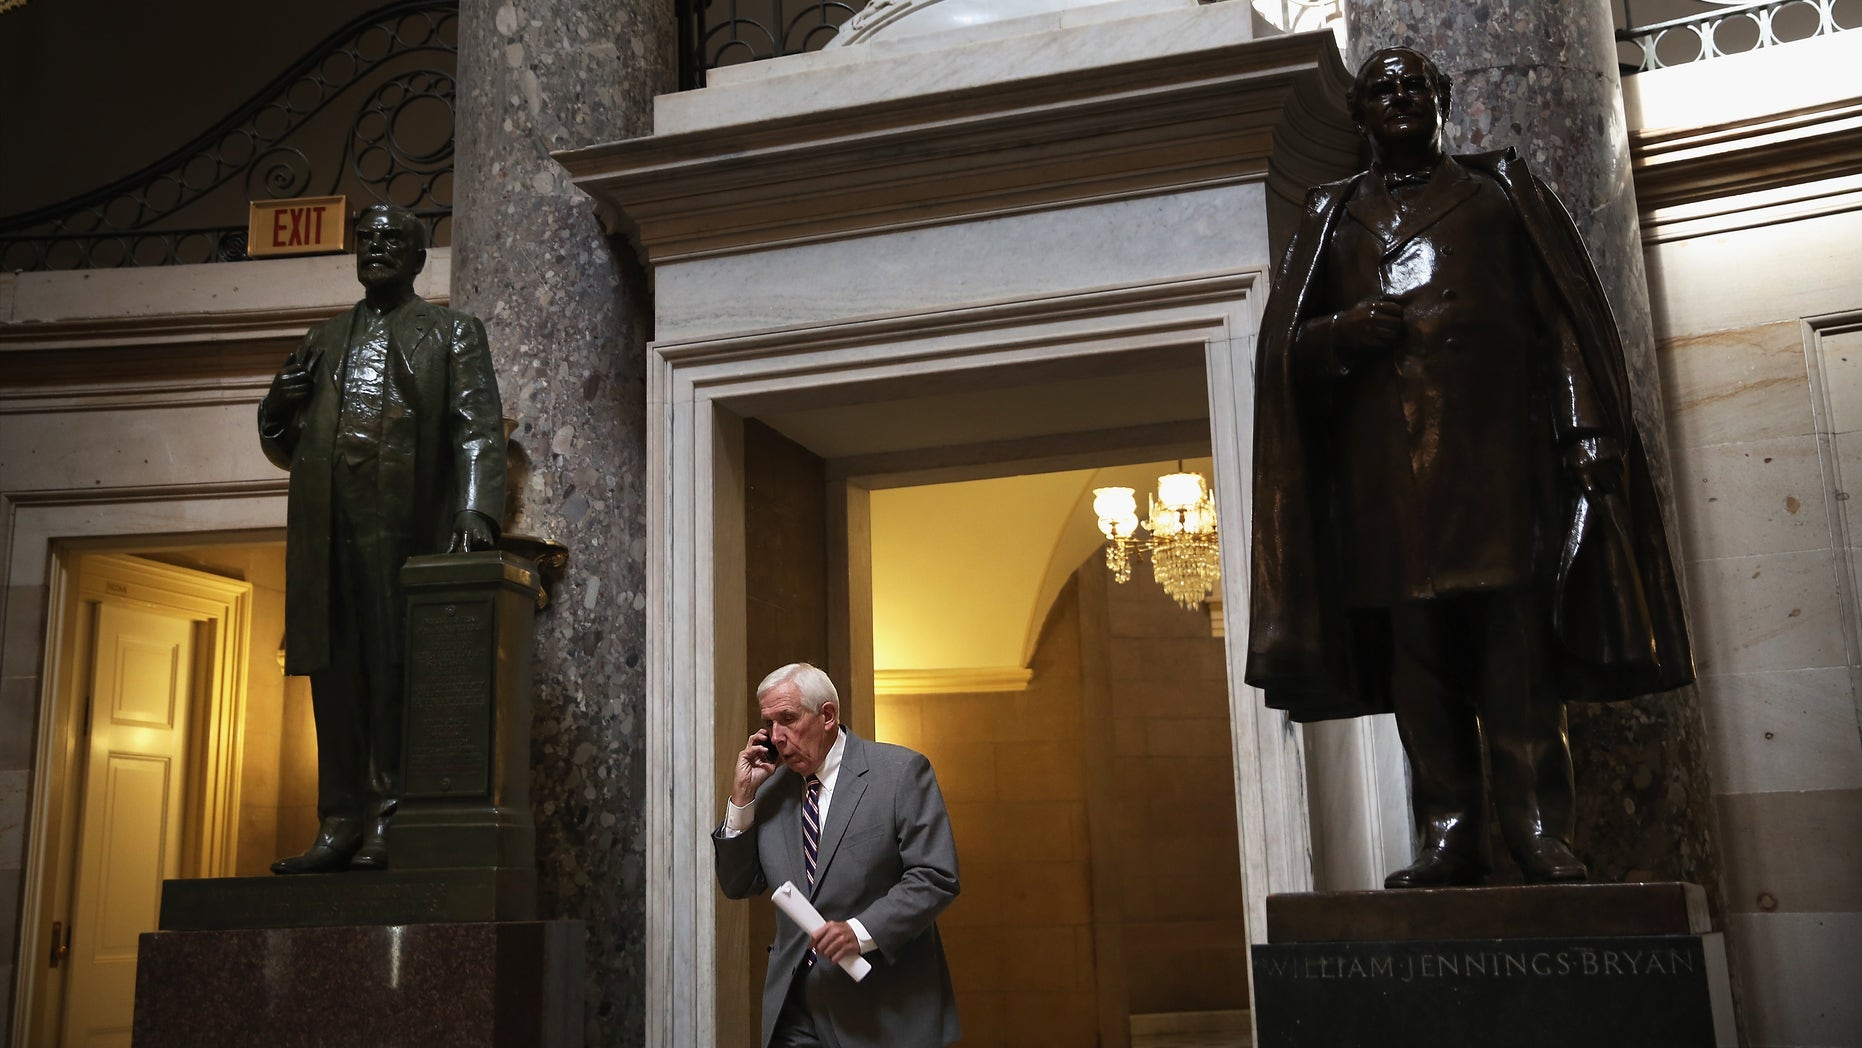 WASHINGTON, DC - OCTOBER 03:  U.S. Rep. Frank Wolf (R-VA) talks on his cellular phone as he passes through the Statuary Hall at the Capitol October 3, 2013 on Capitol Hill in Washington, DC. (Photo by Alex Wong/Getty Images)